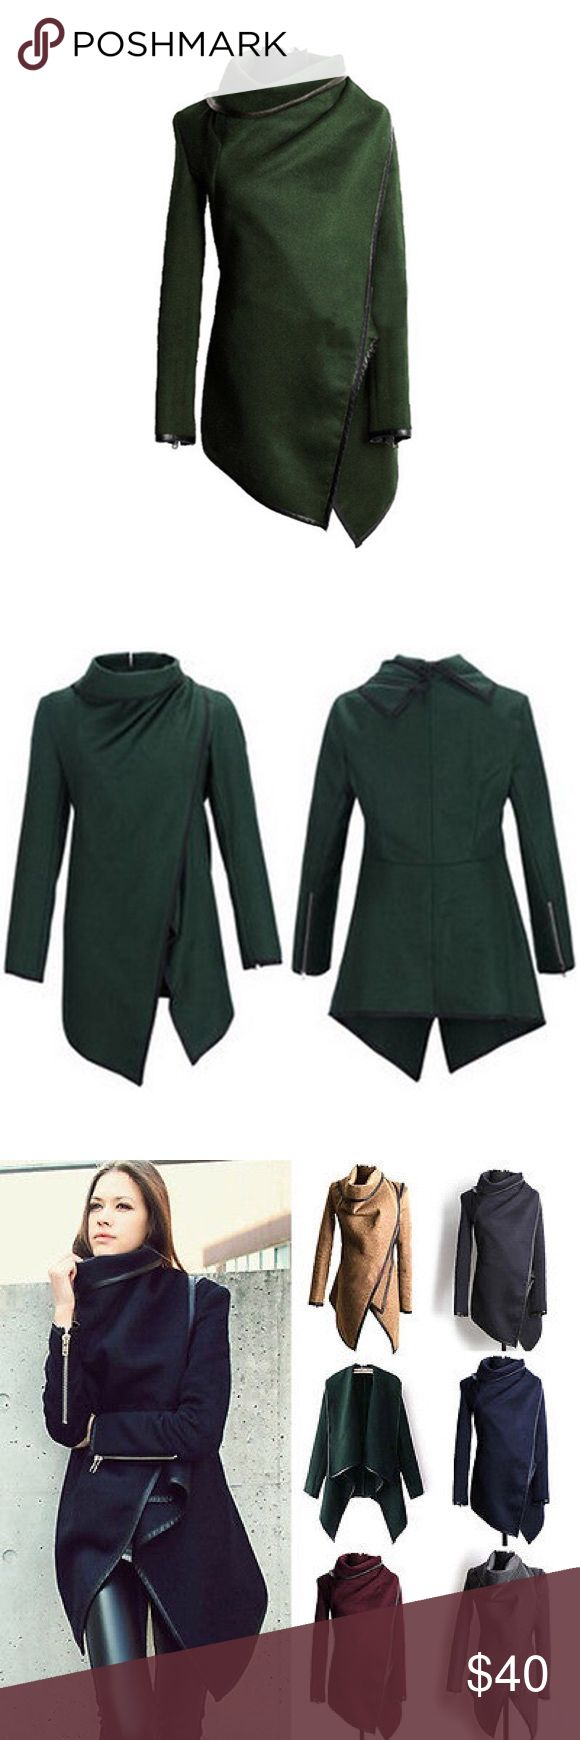 SALE❄️Green High Neck Waterfall Wrap w/Black Trim Army Green High Neck Waterfall Wrap w/Black Trim Cotton Blend, hip length, asymmetrical jacket. Can be worn multiple ways. Also available in Grey, Black, Camel, Wine/Burgundy. **Please see size chart for measurements as these tend to run smaller than typical US sizes. There may be a 2 to 3% difference according to manual measurement. ** Please don't hesitate to ask if you have any questions!! Jackets & Coats